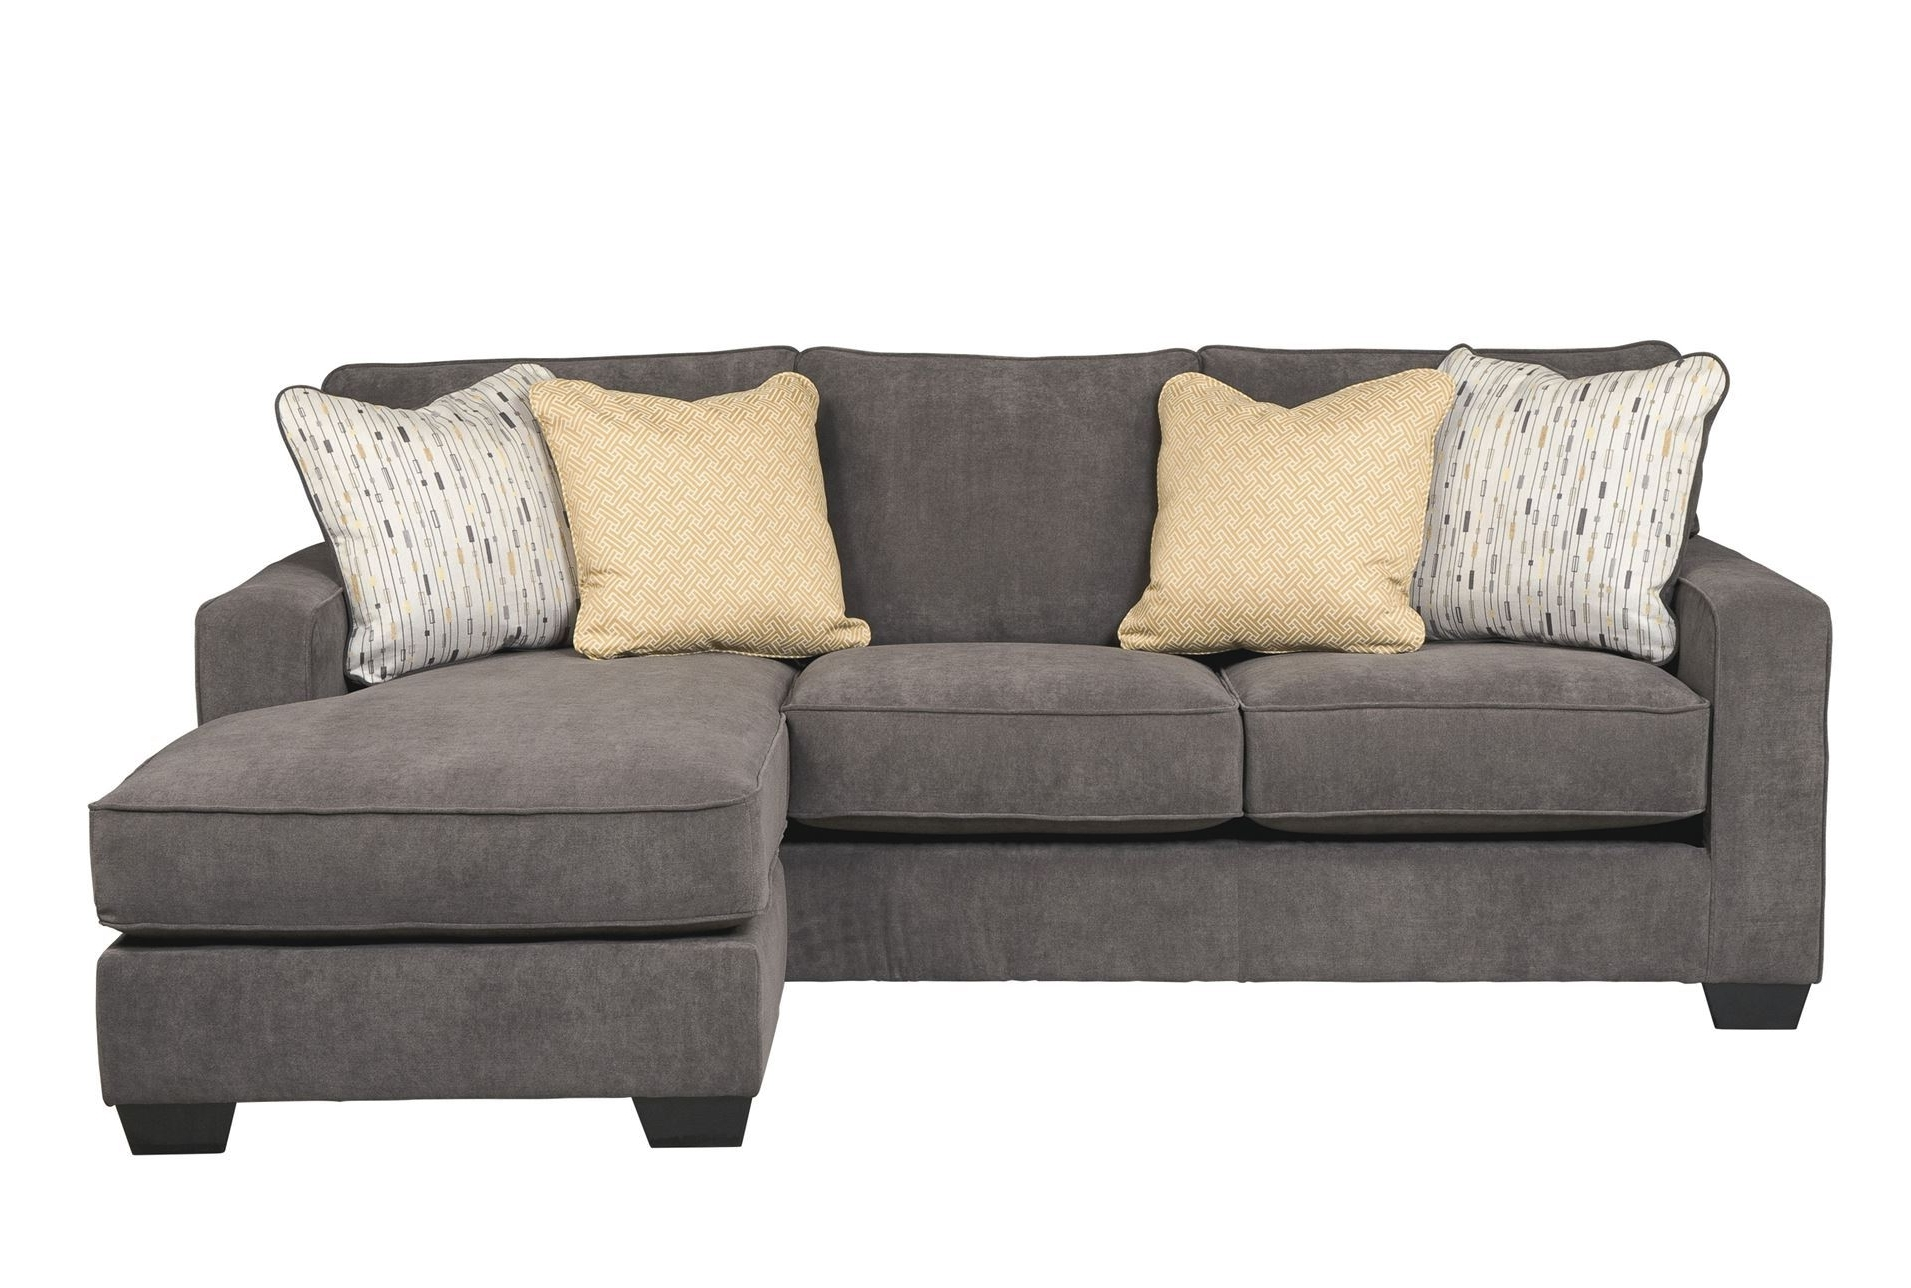 The Ideal Solution For Small Spaces – Sectional With Sleeper Sofa For Recent Grey Sofa Chaises (View 14 of 15)